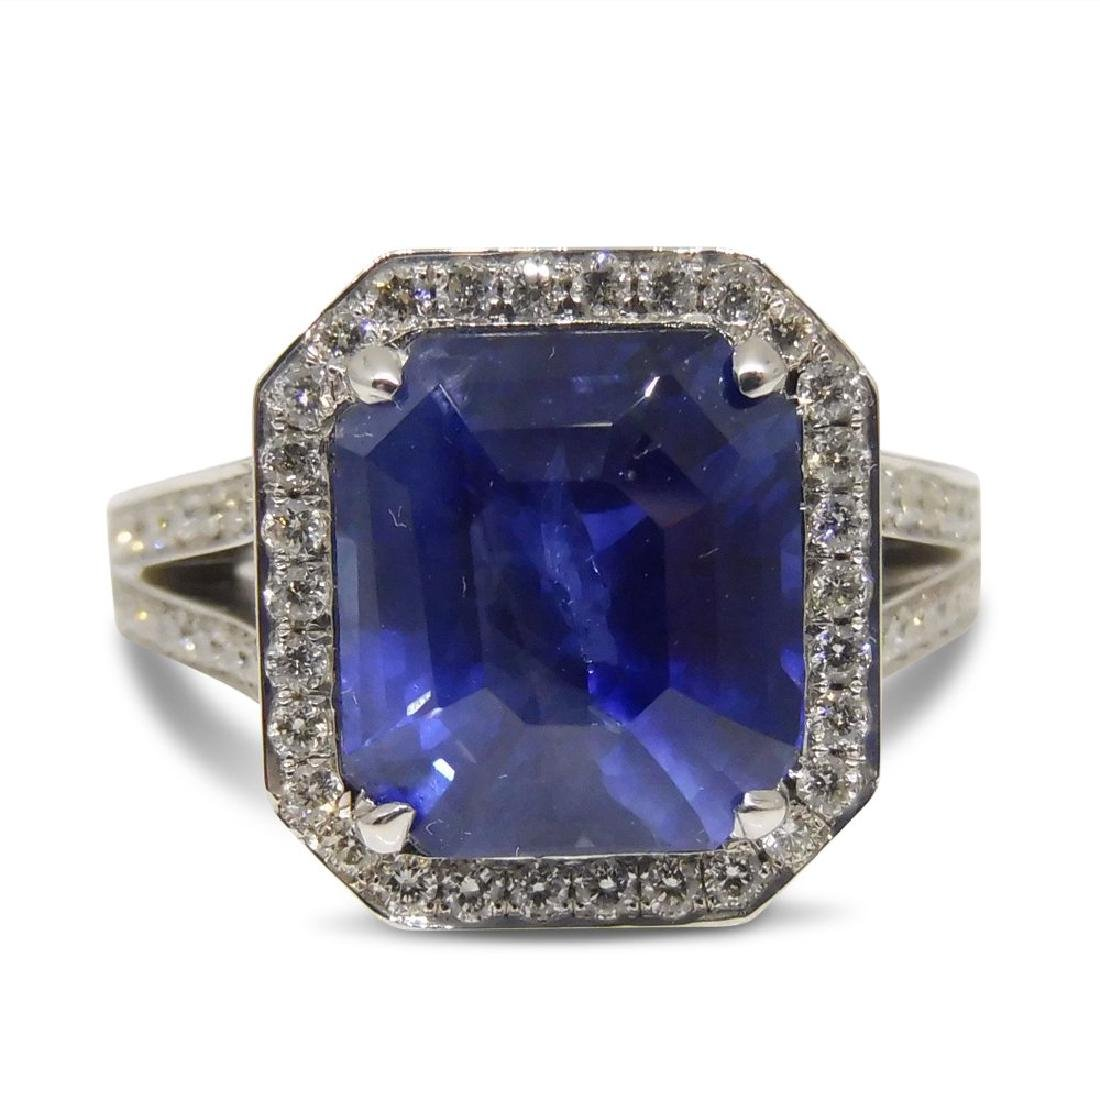 18K White Gold Unheated Sapphire Ring, 5.75ctw - 8